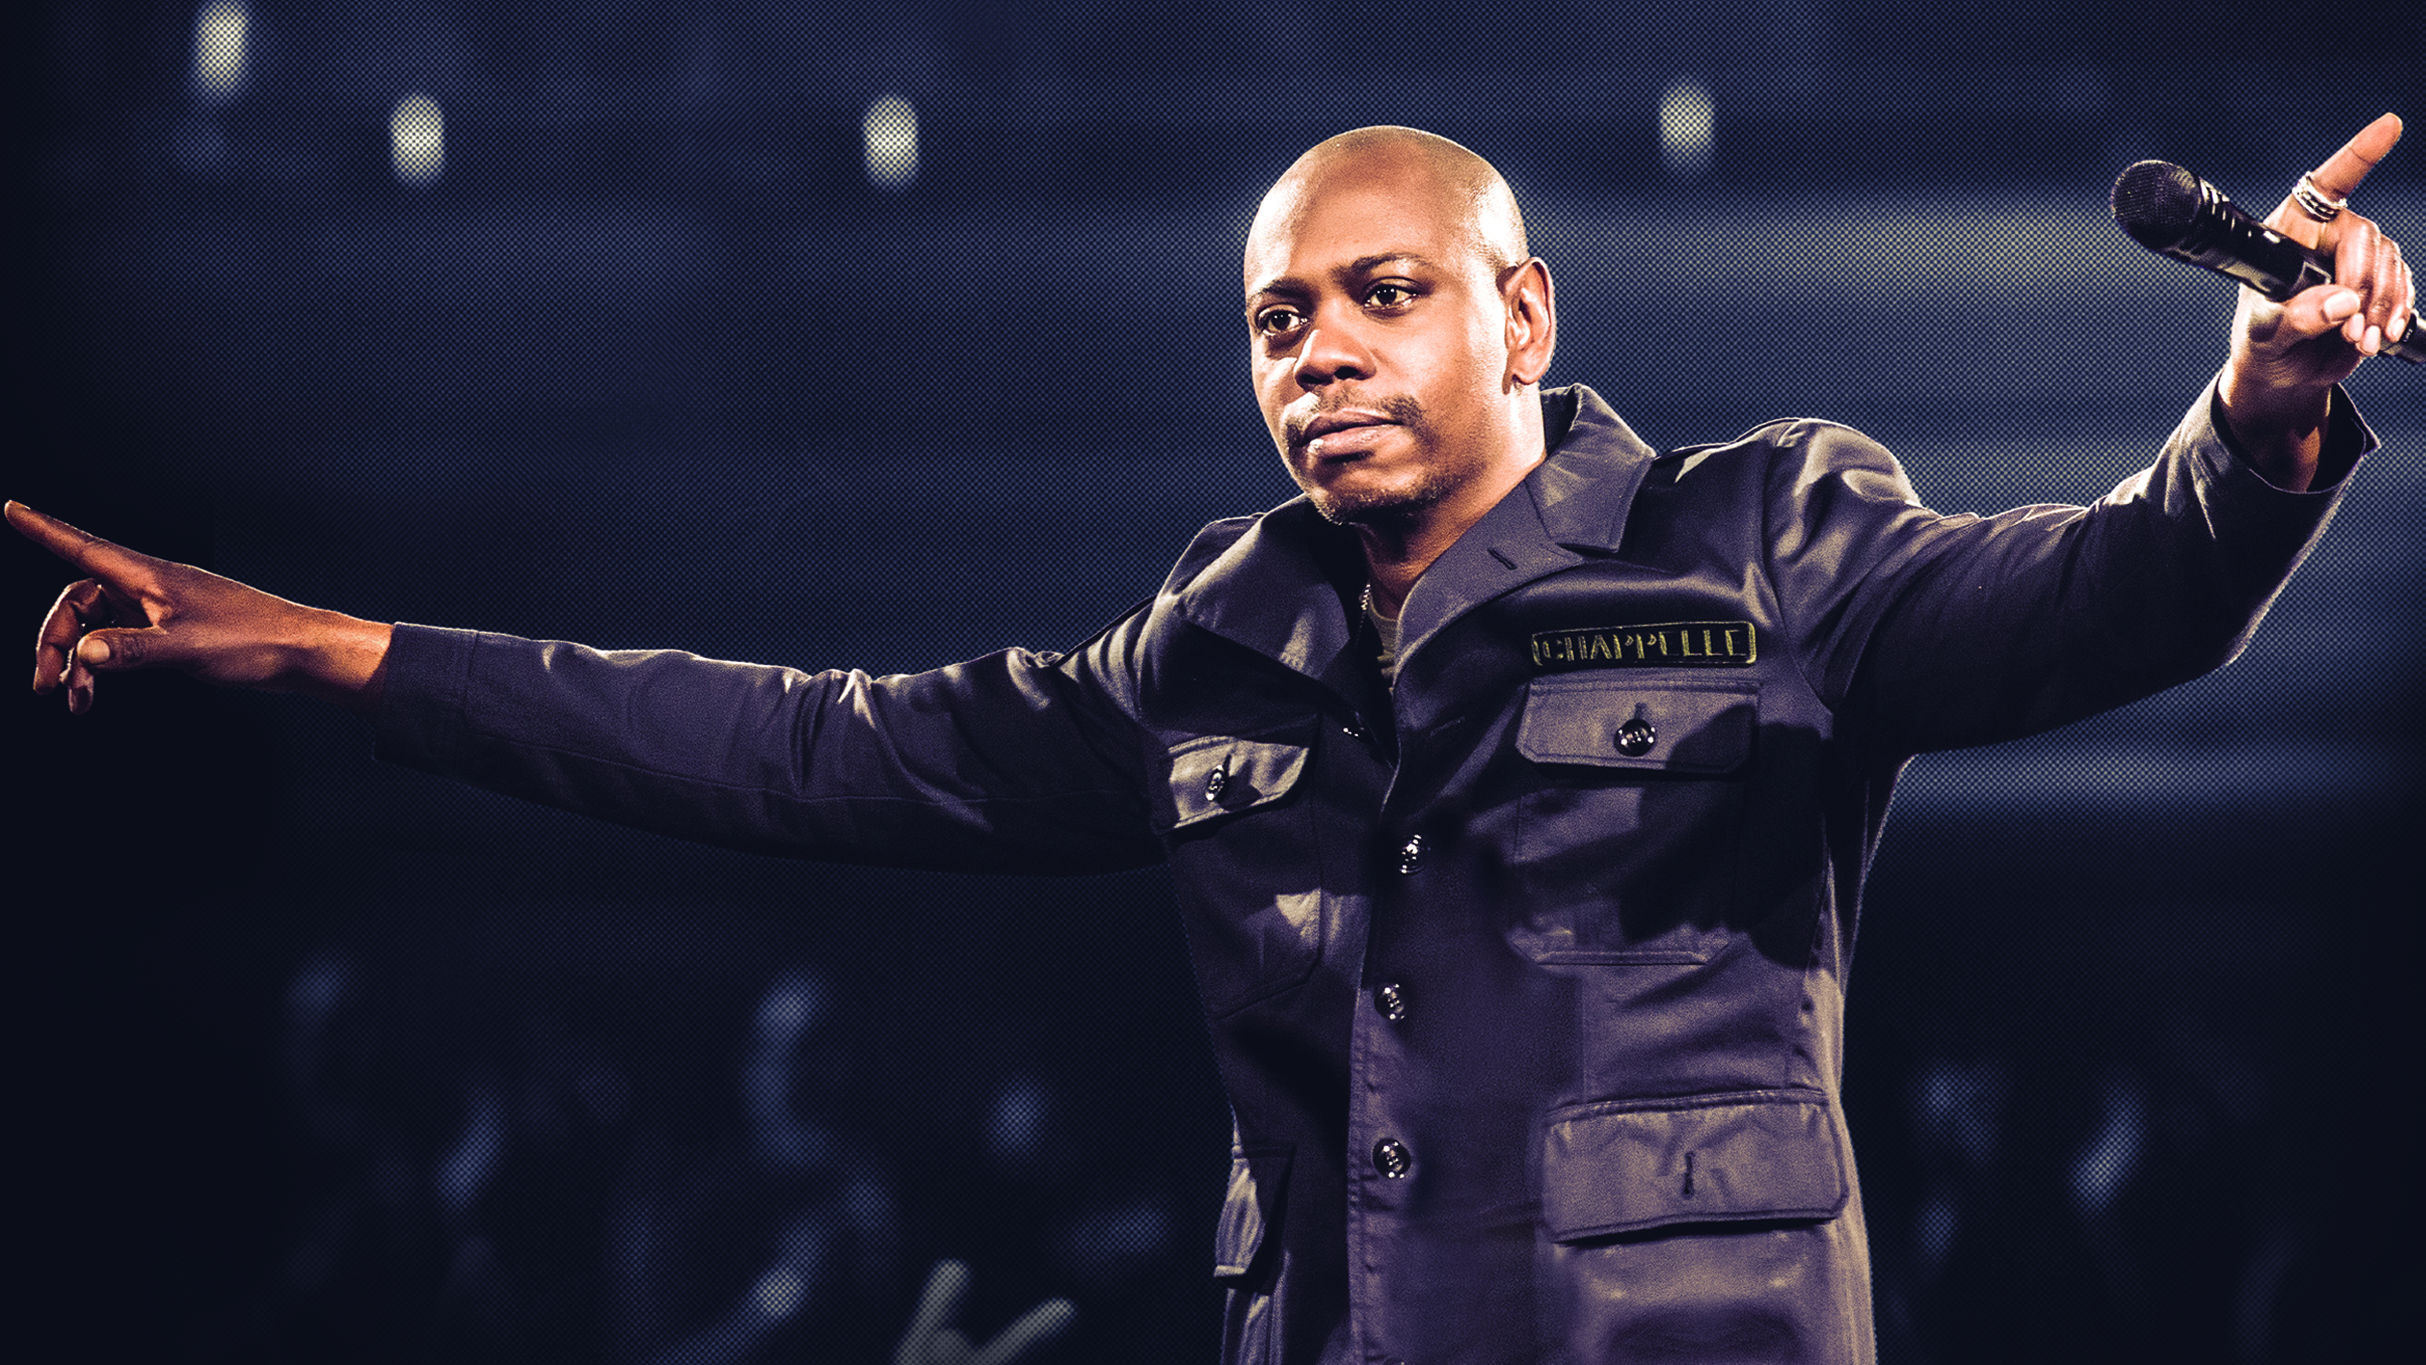 Dave Chappelle Comes to Japan